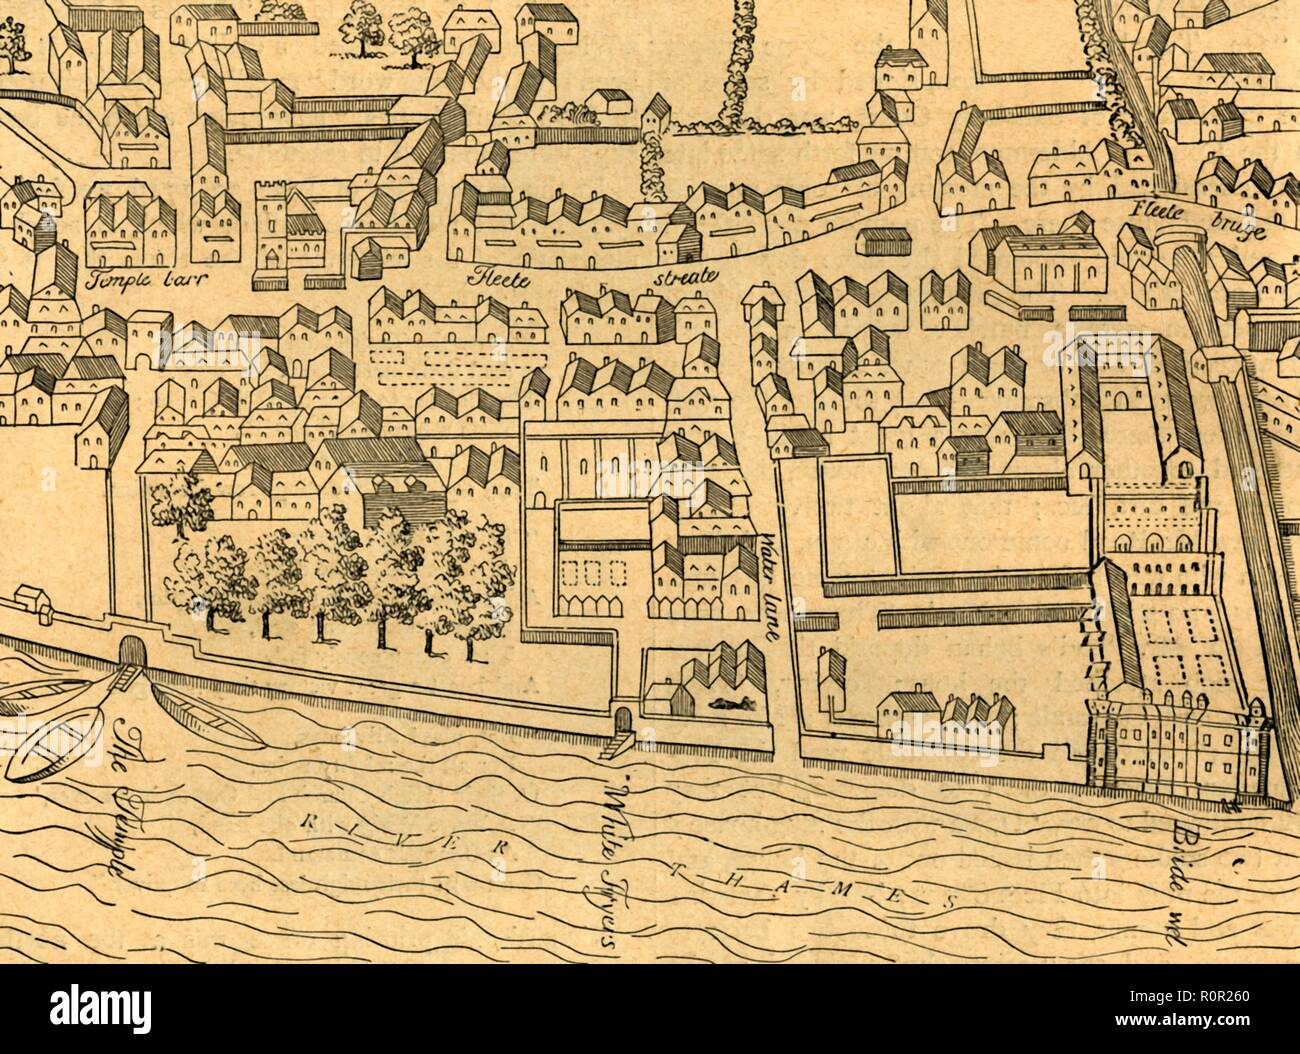 'Fleet Street, The Temple, Etc.', (1897). Map showing London as it was in the 16th century or so. On the right is Bridewell, on the banks of the Fleet River between Fleet Street and the River Thames. Bridewell Palace was later an orphanage, place of correction for wayward women, prison and a poorhouse. It was closed in 1855. Also shown is Temple Bar. From Old and New London, Volume I, by Walter Thornbury. [Cassell and Company, Limited, London, Paris & Melbourne, 1897] - Stock Image